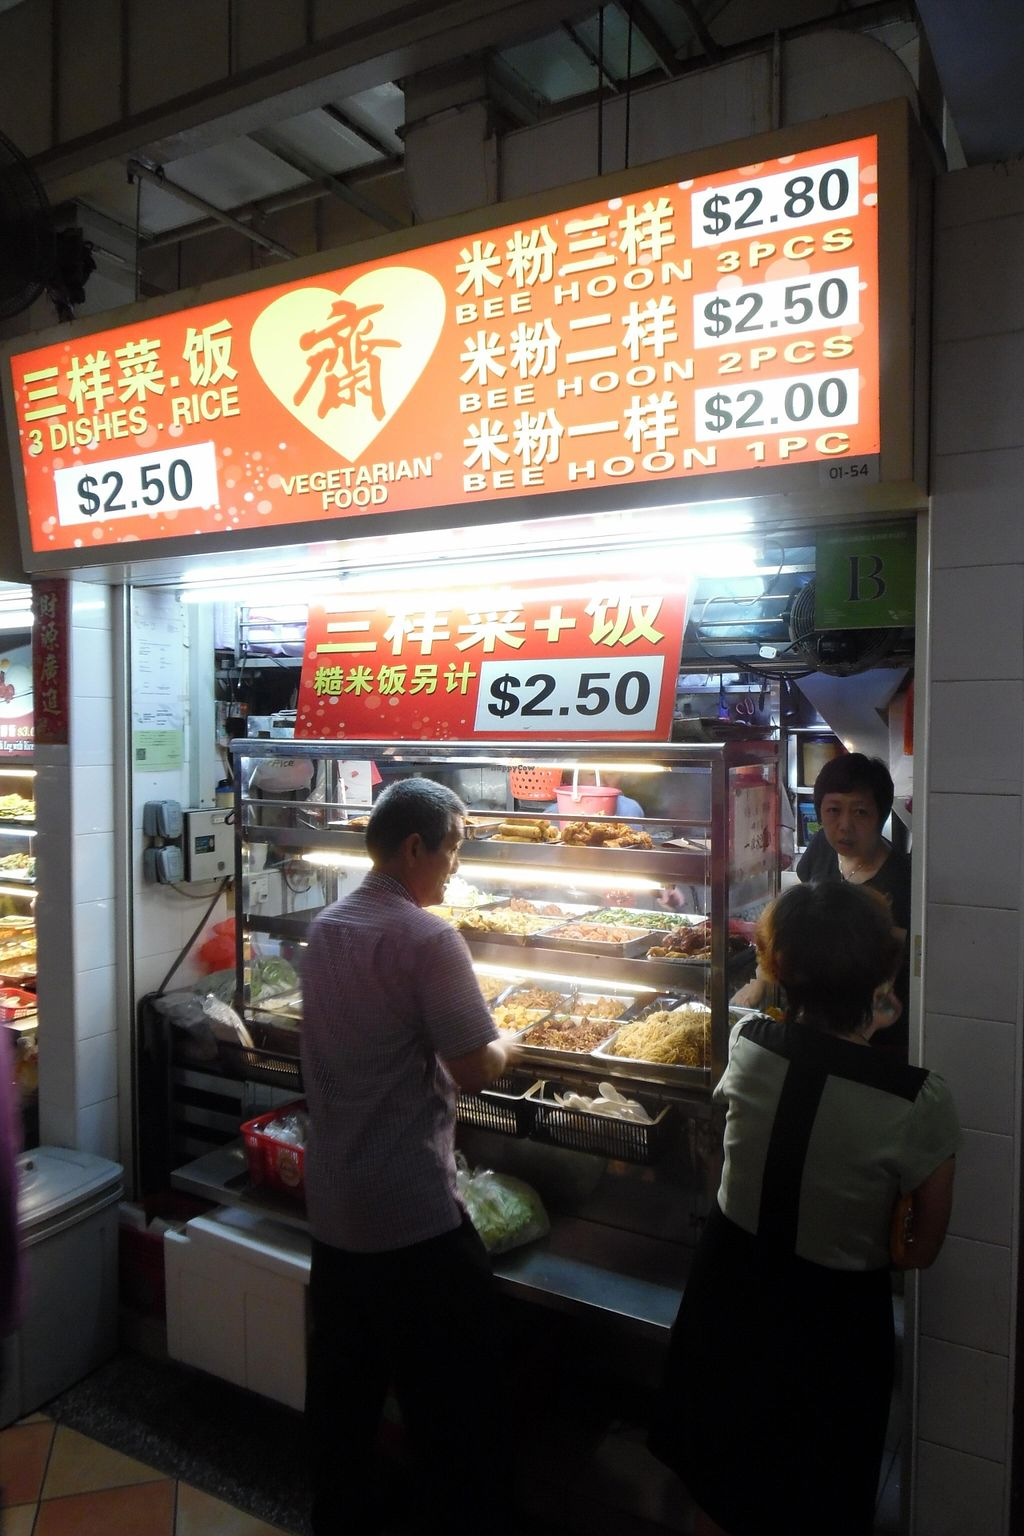 """Photo of Albert Center Food Stall 54  by <a href=""""/members/profile/WP"""">WP</a> <br/>Food stall 54 <br/> March 29, 2016  - <a href='/contact/abuse/image/71524/141769'>Report</a>"""